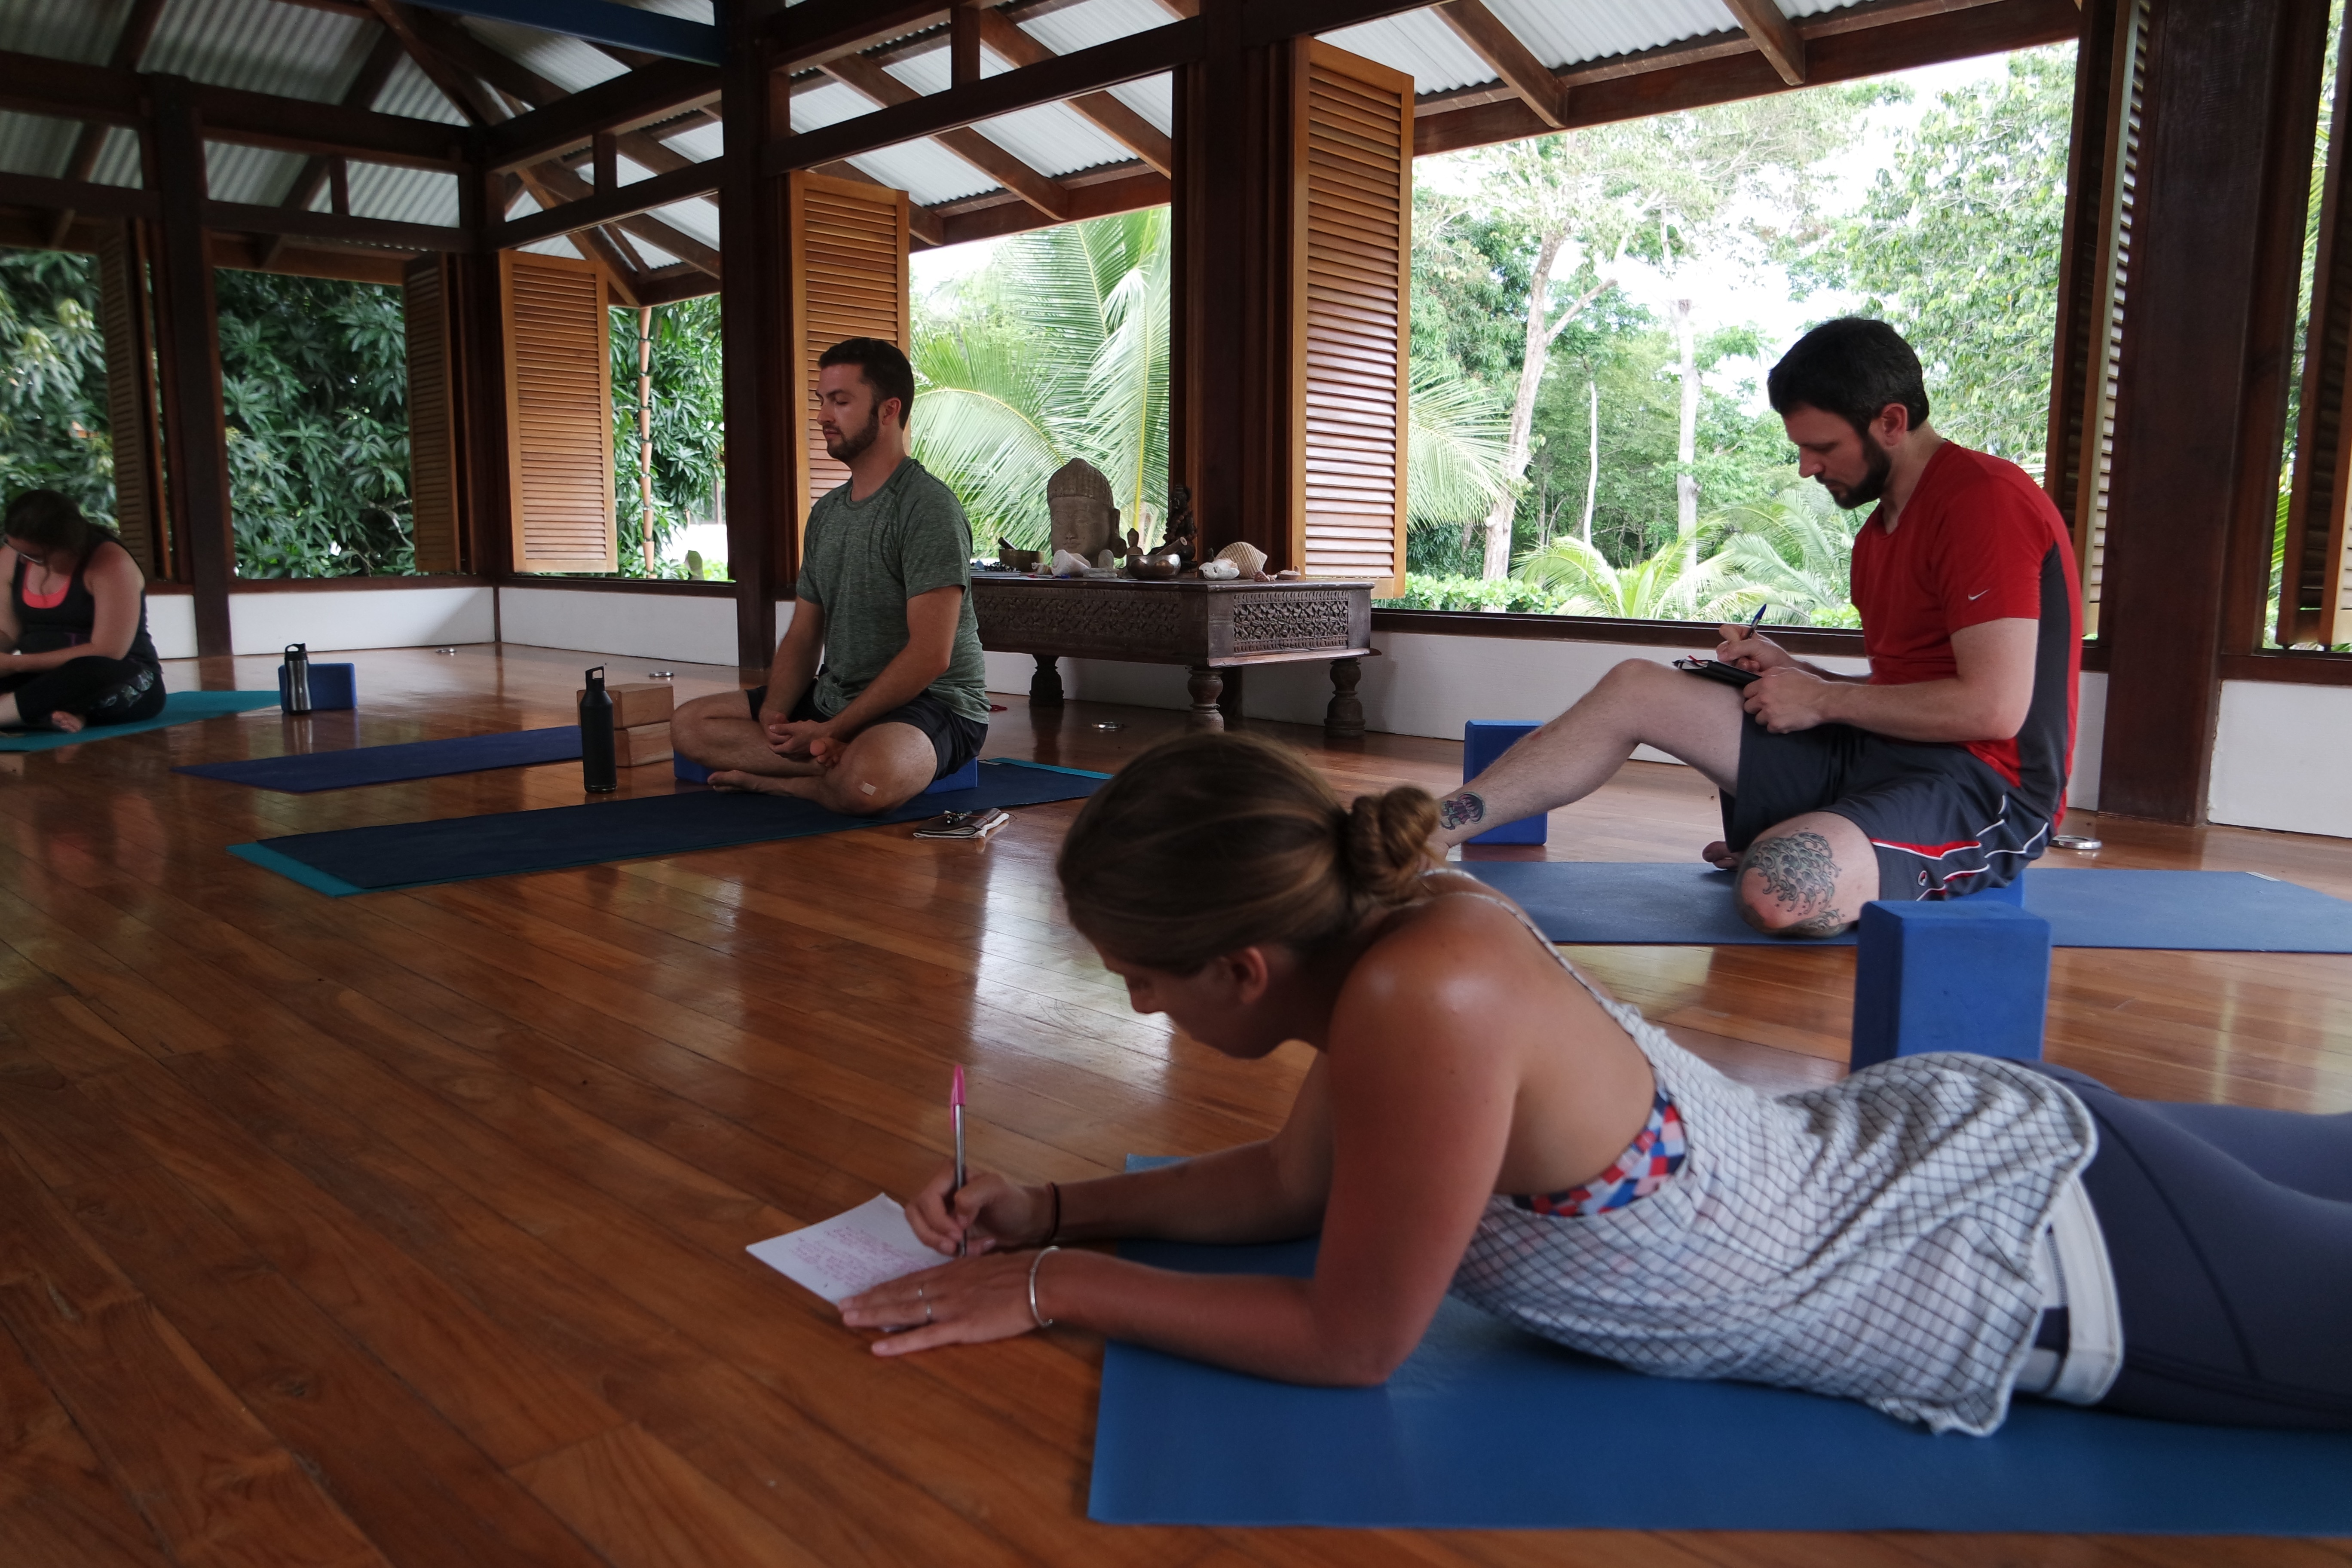 Canvas of Writing and Yoga